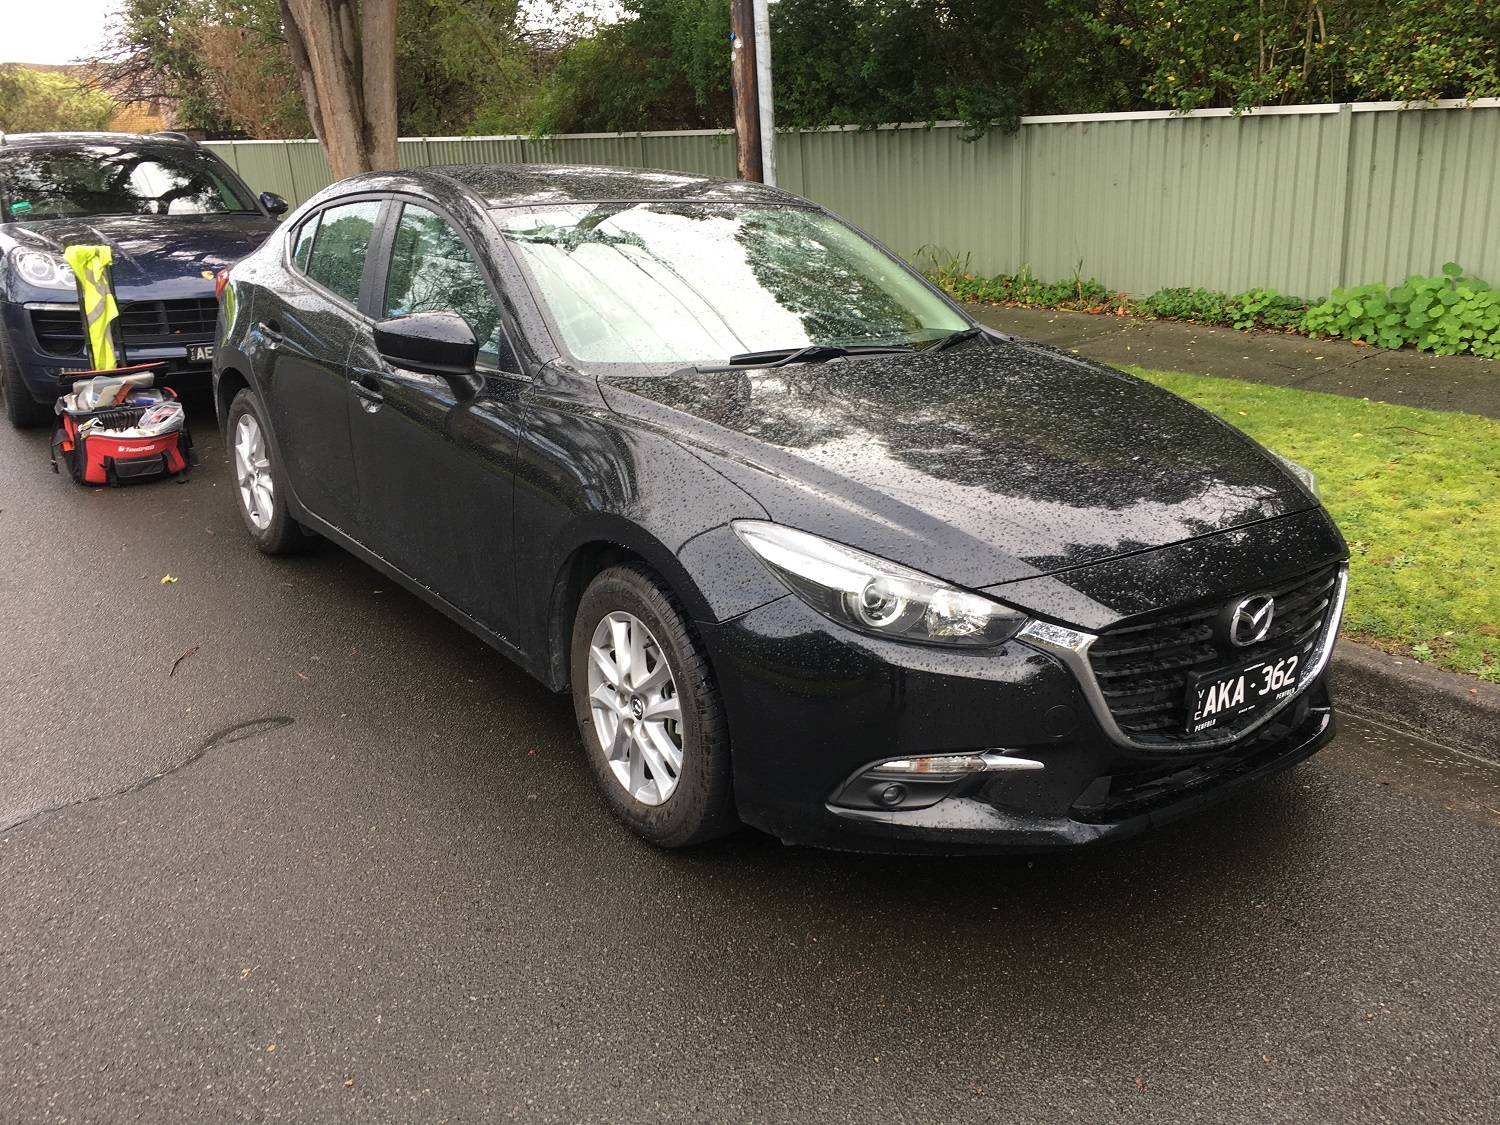 Picture of Suraj's 2016 Mazda 3